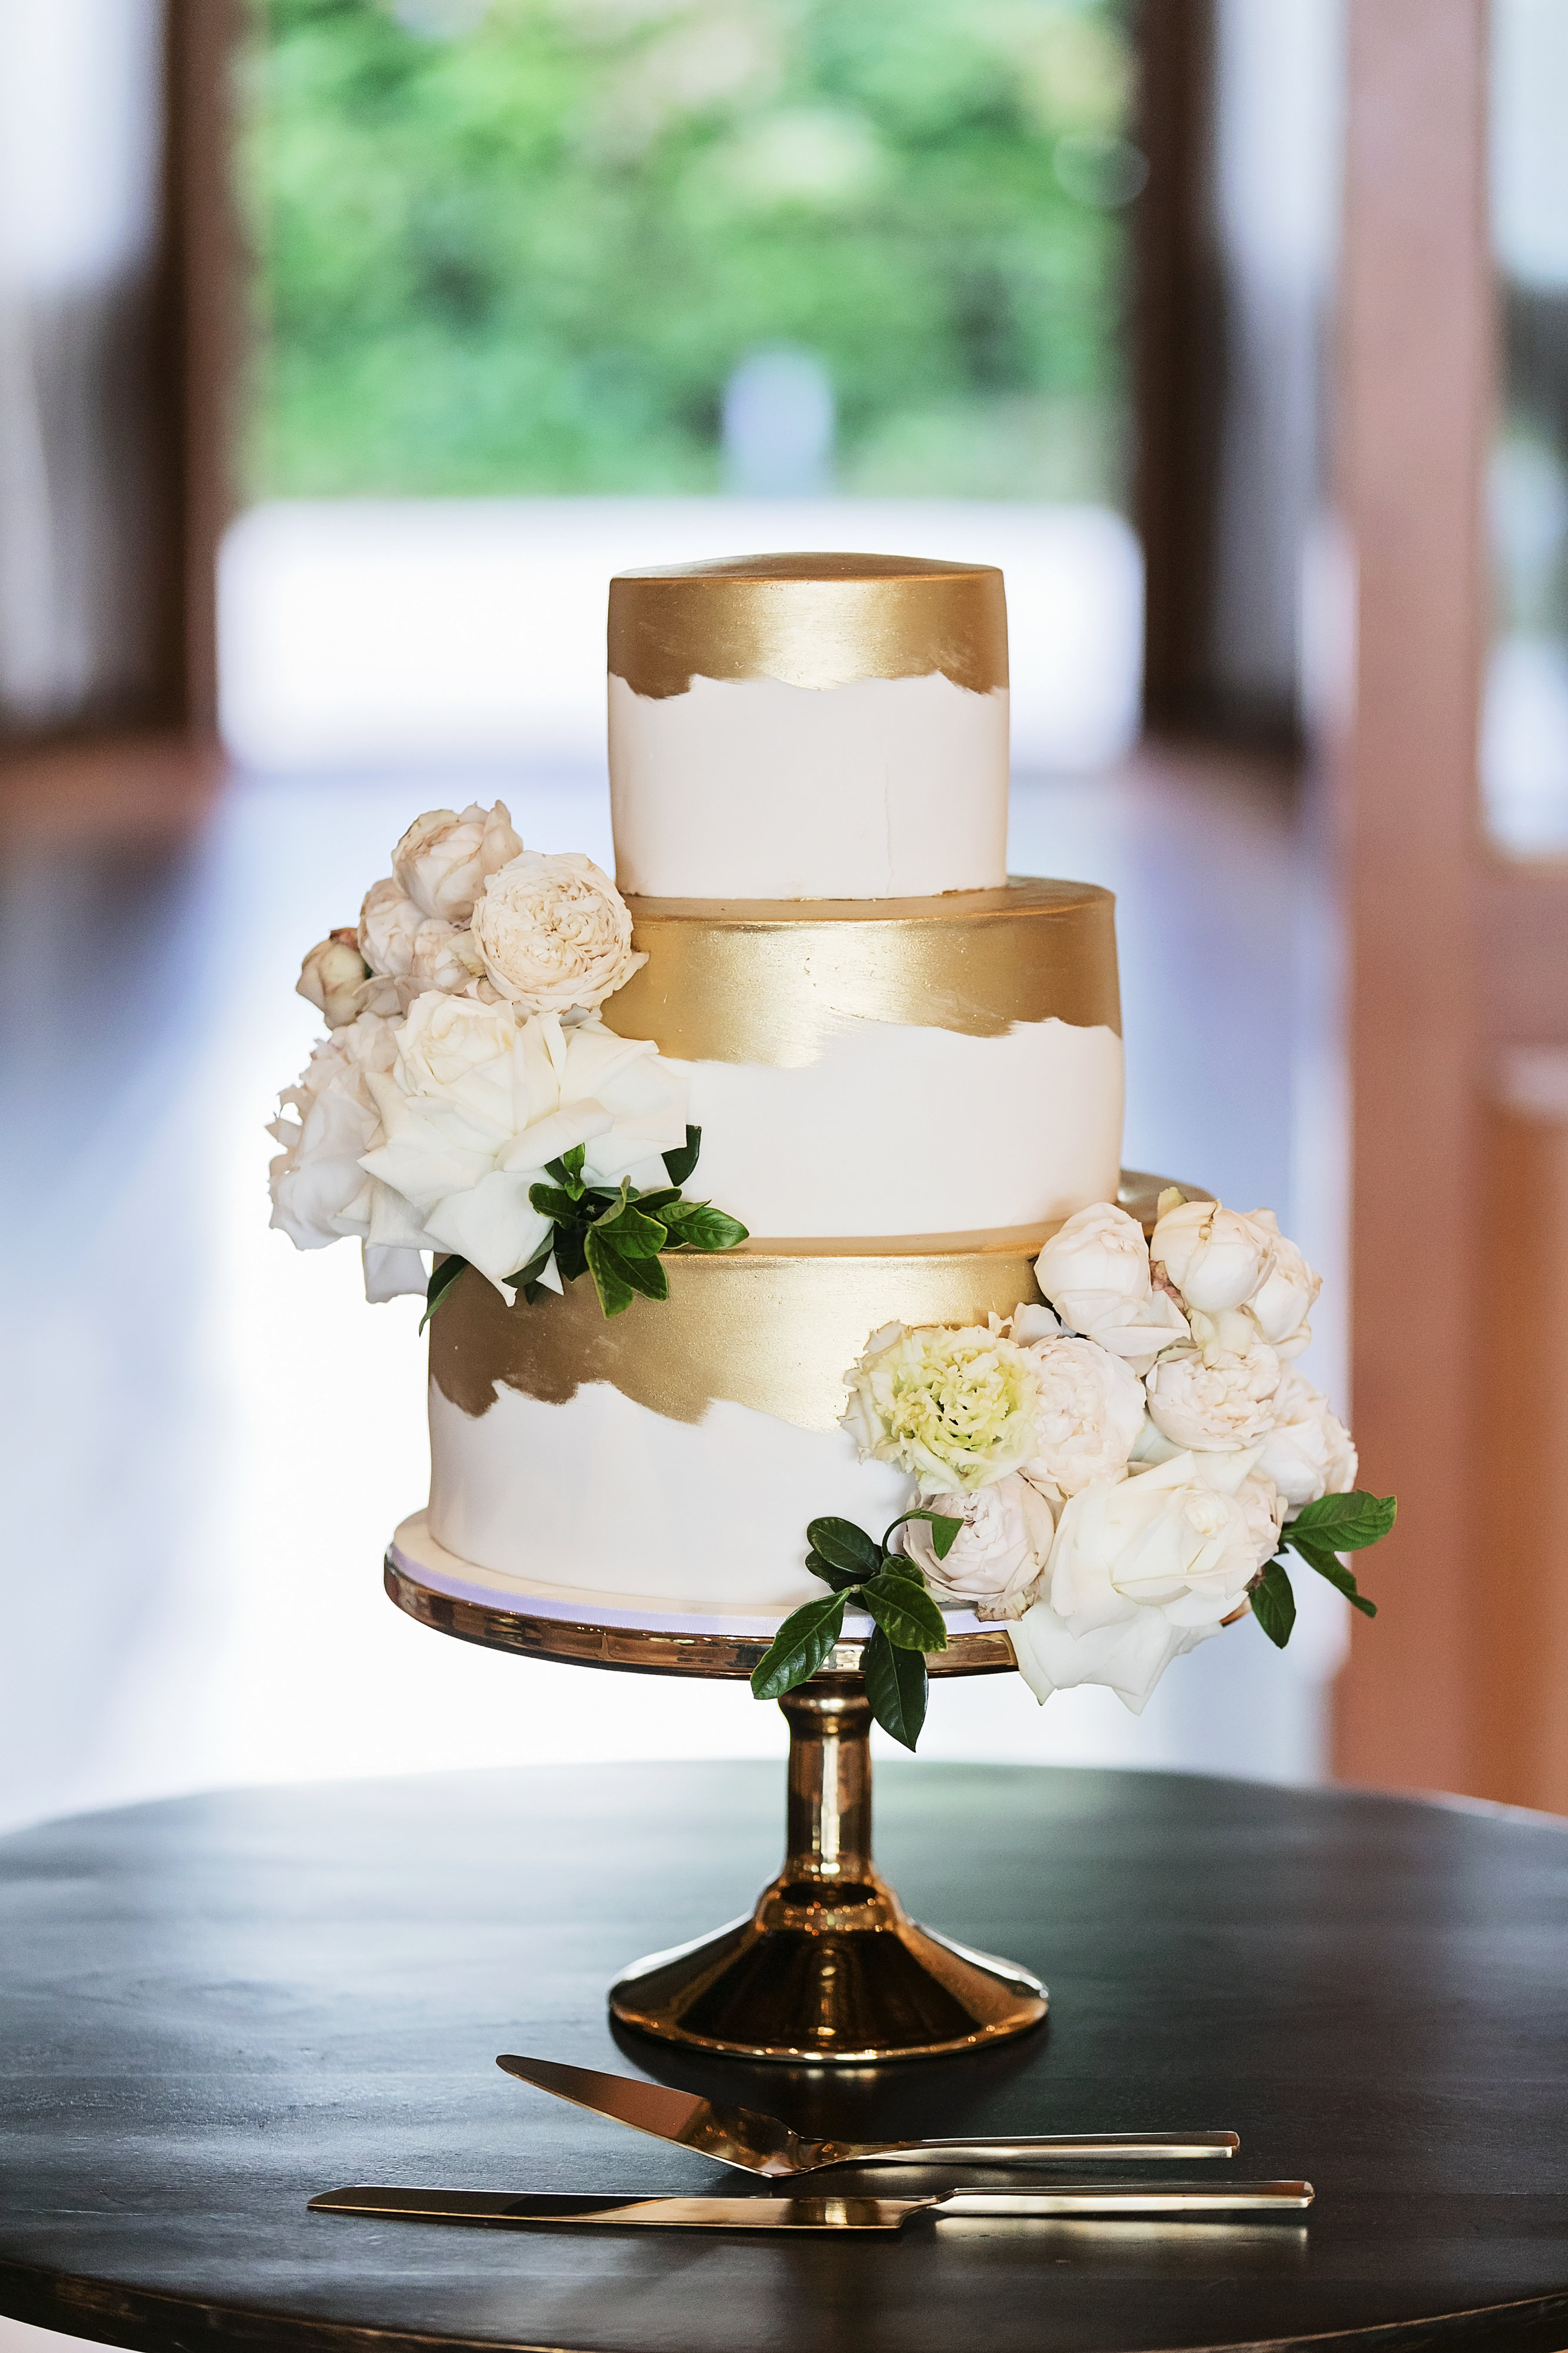 Wedding cake flowers featuring roses